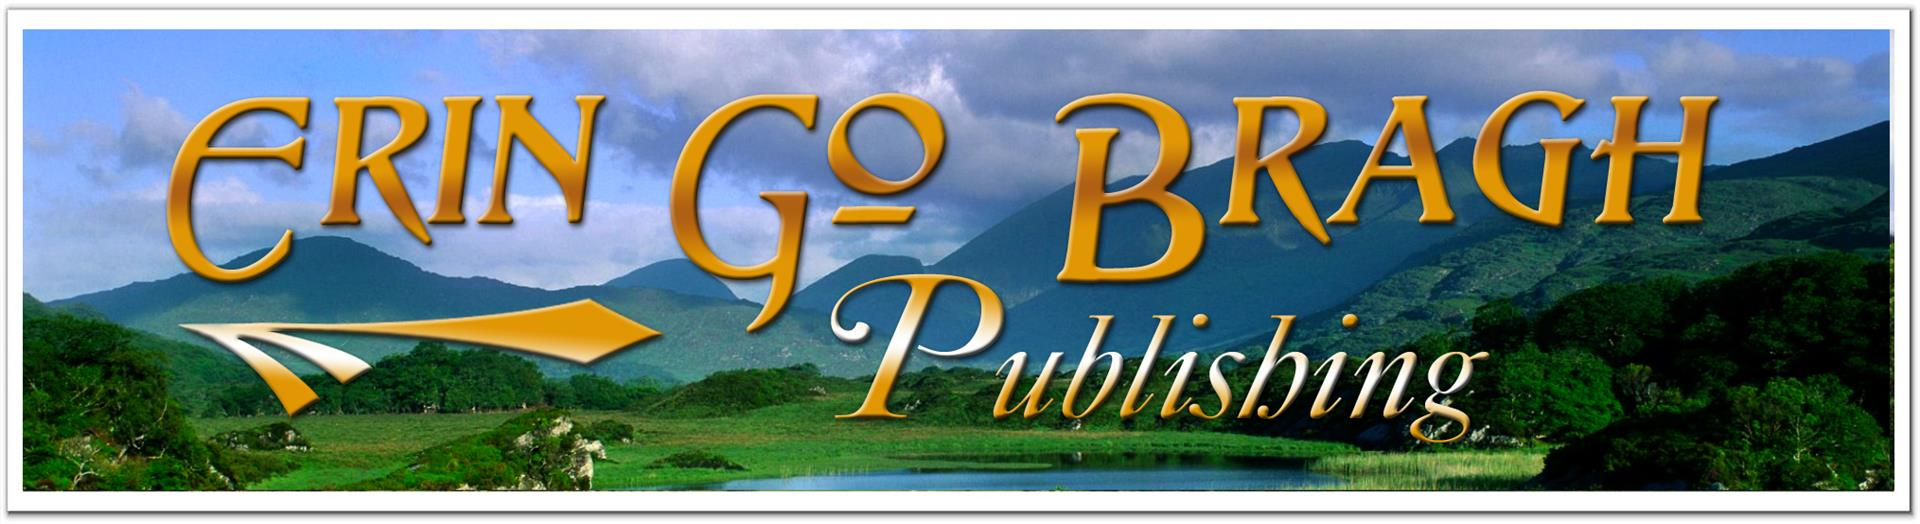 erin-go-braugh-publishing3